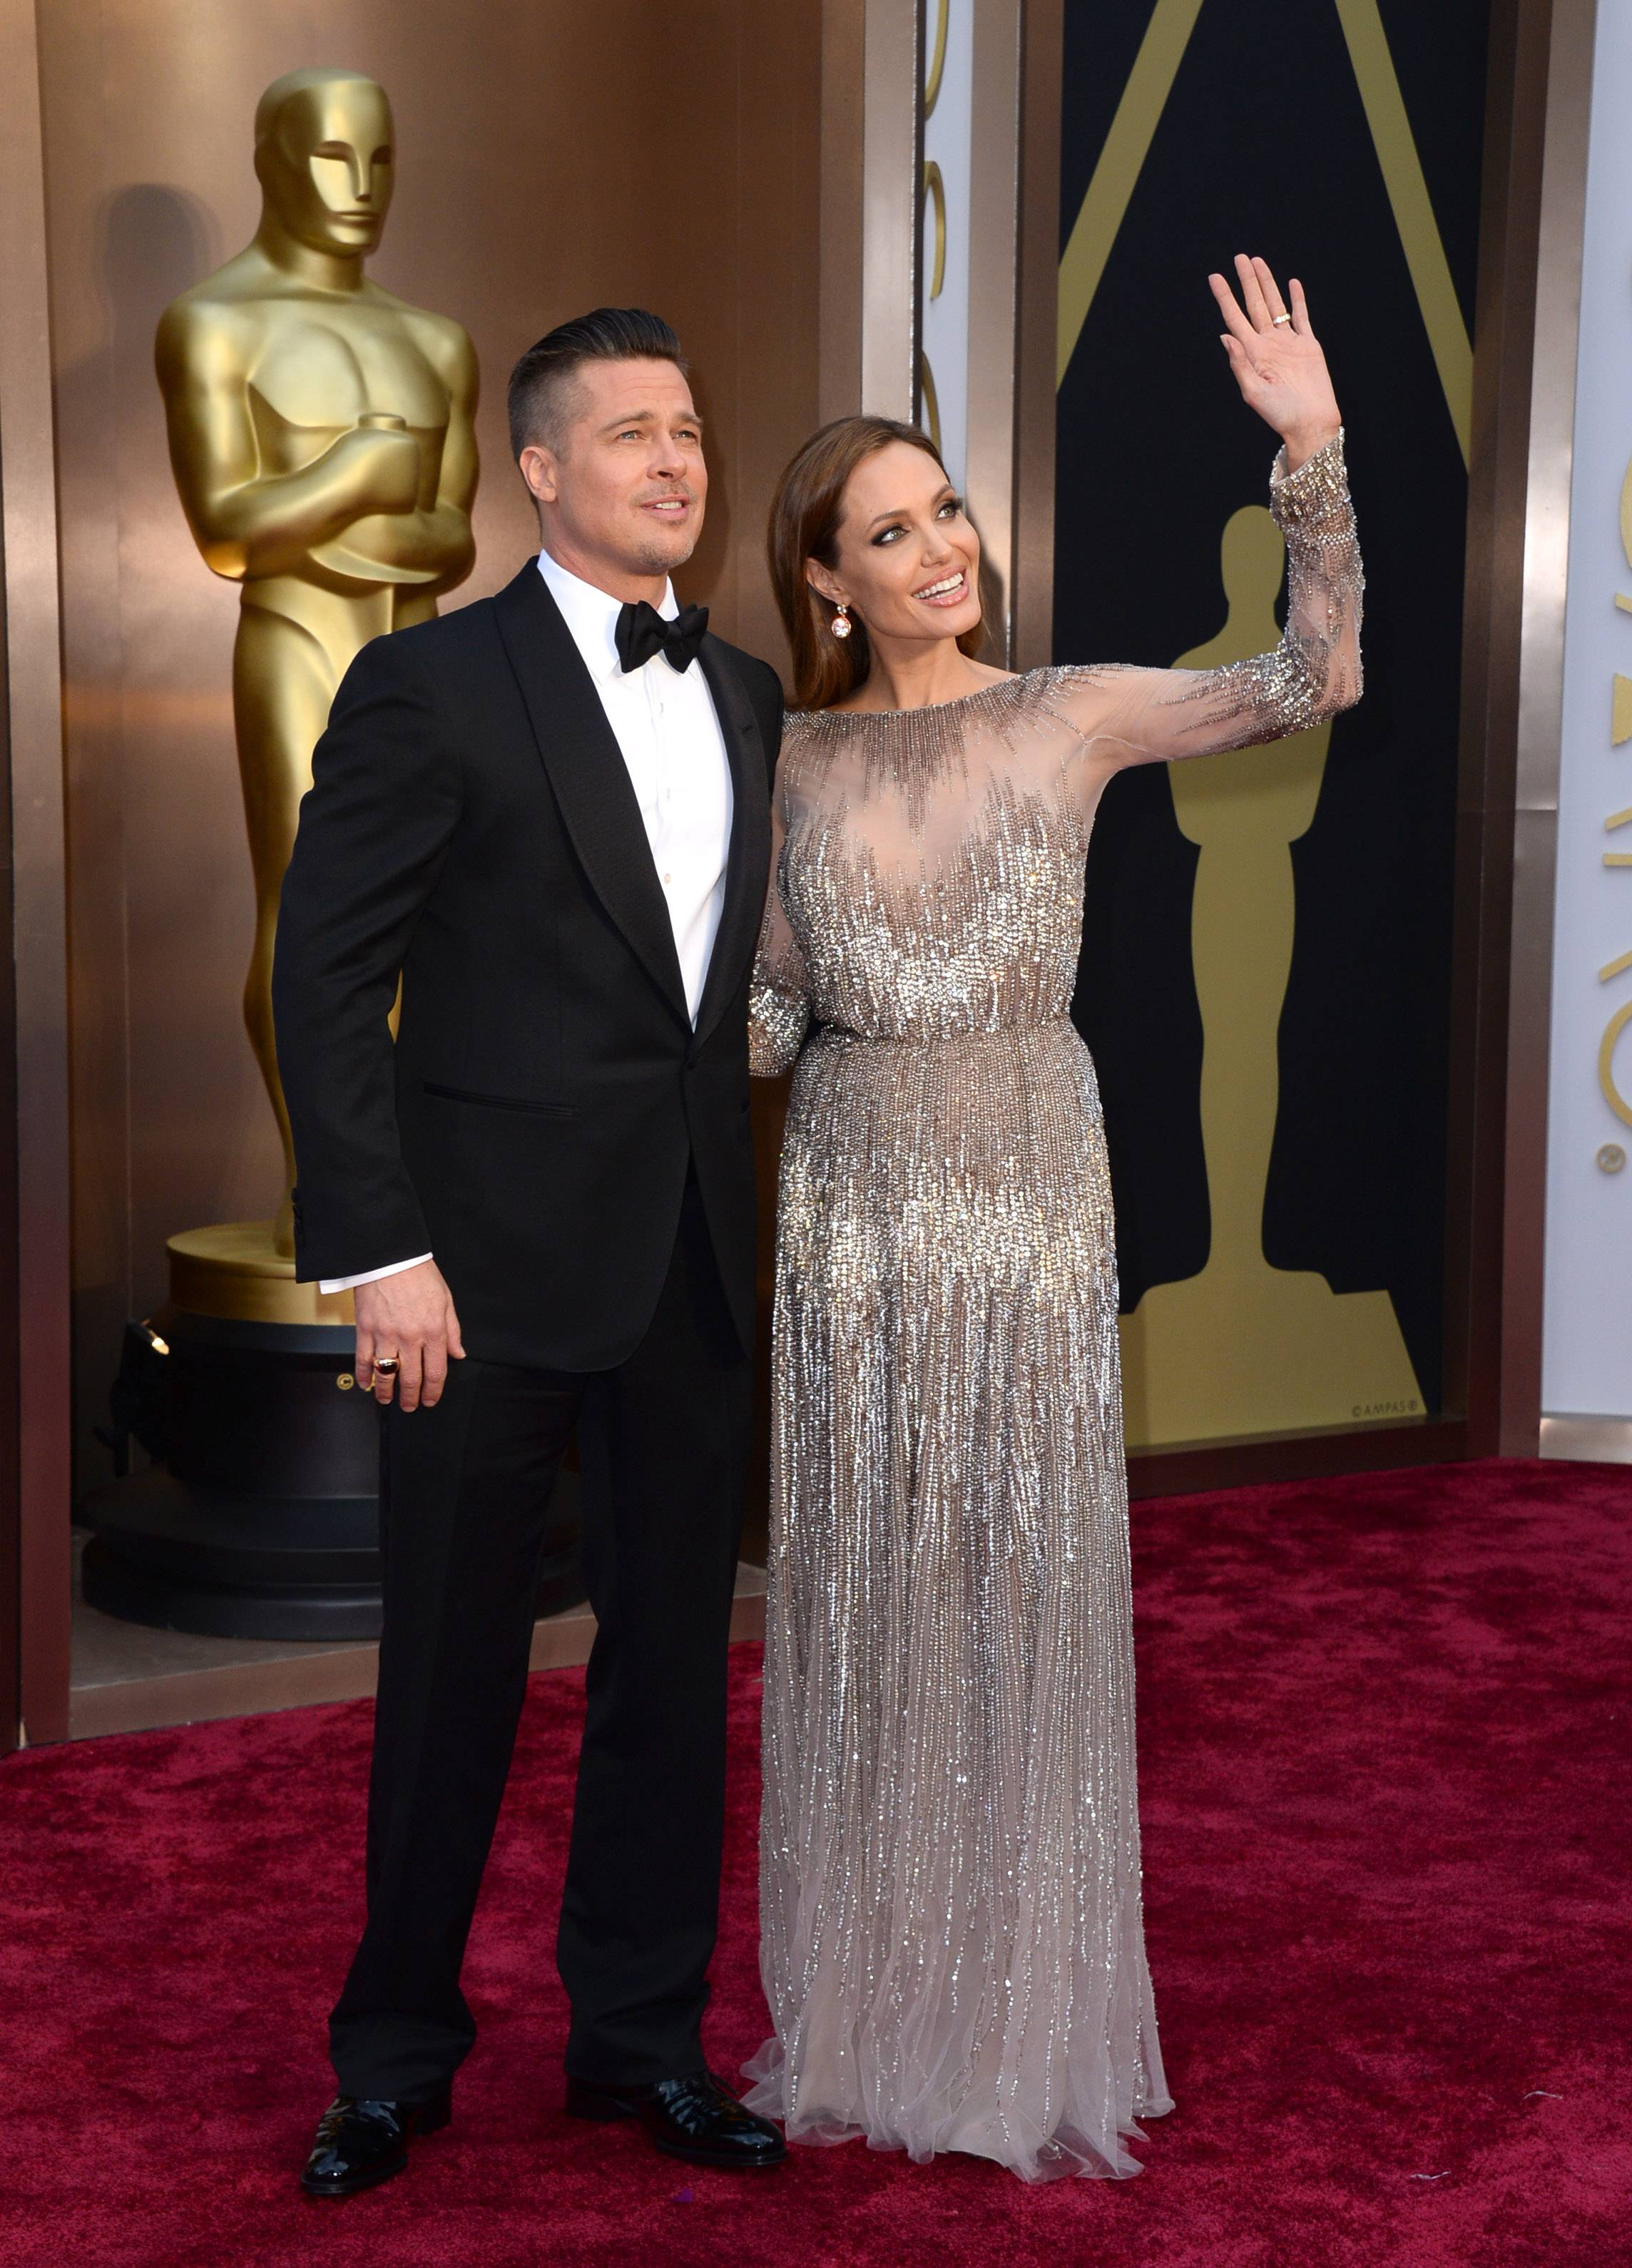 One of Hollywood's hottest couples Brad Pitt and Angelina Jolie salute the fans on Sunday at the Oscars.